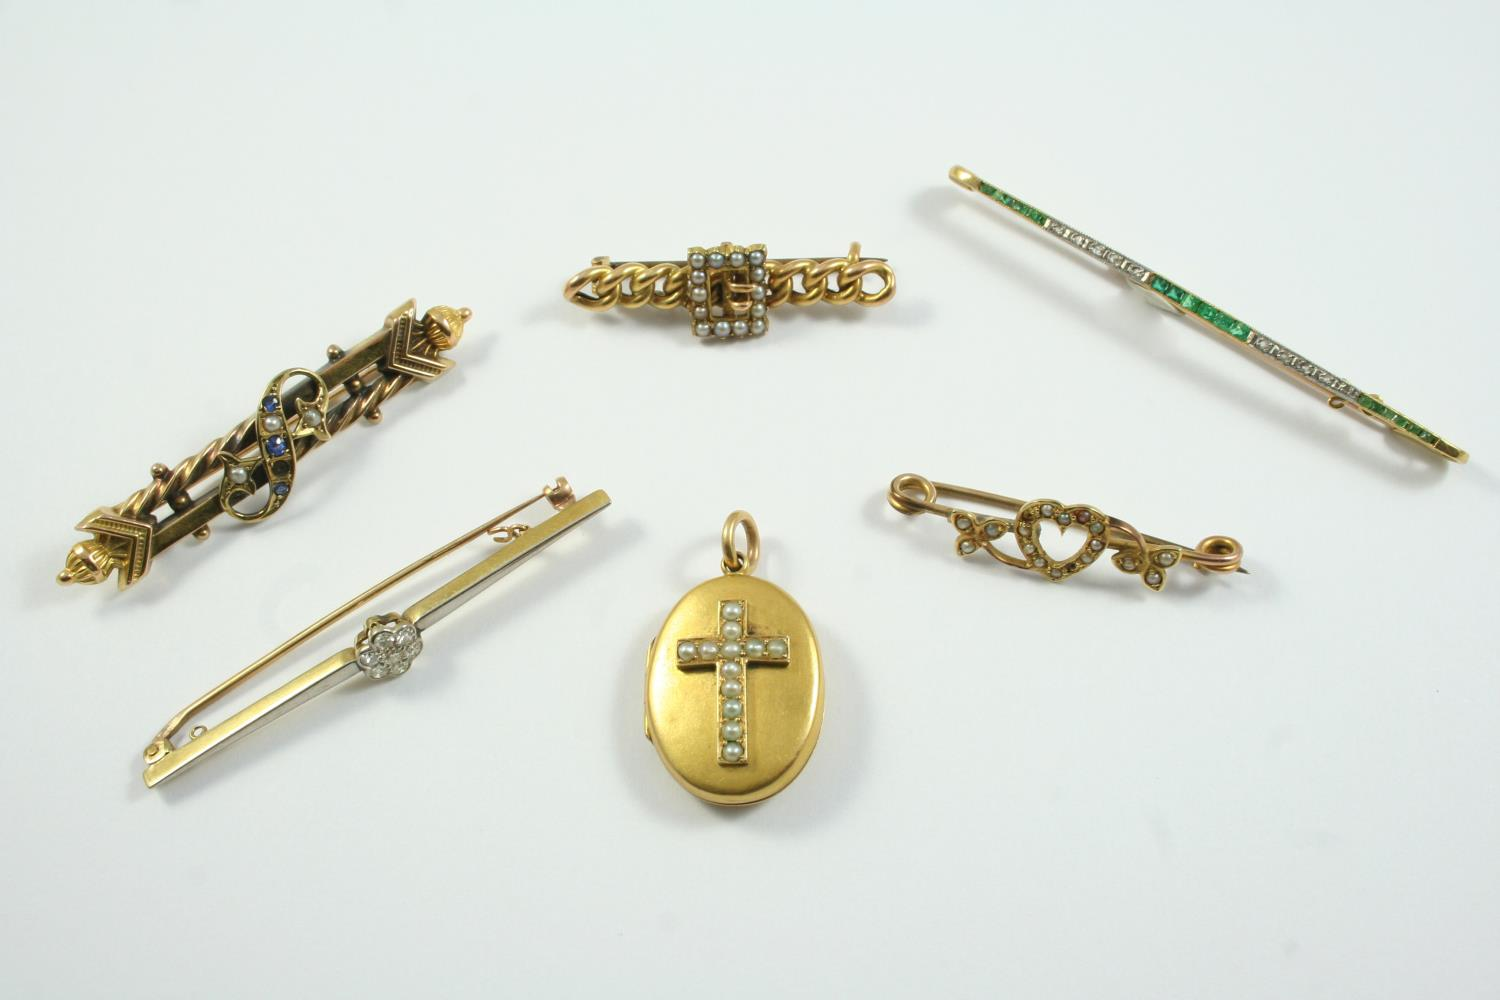 A DIAMOND CLUSTER BAR BROOCH set with circular-cut diamonds in 15ct gold, 6.3cm long, together